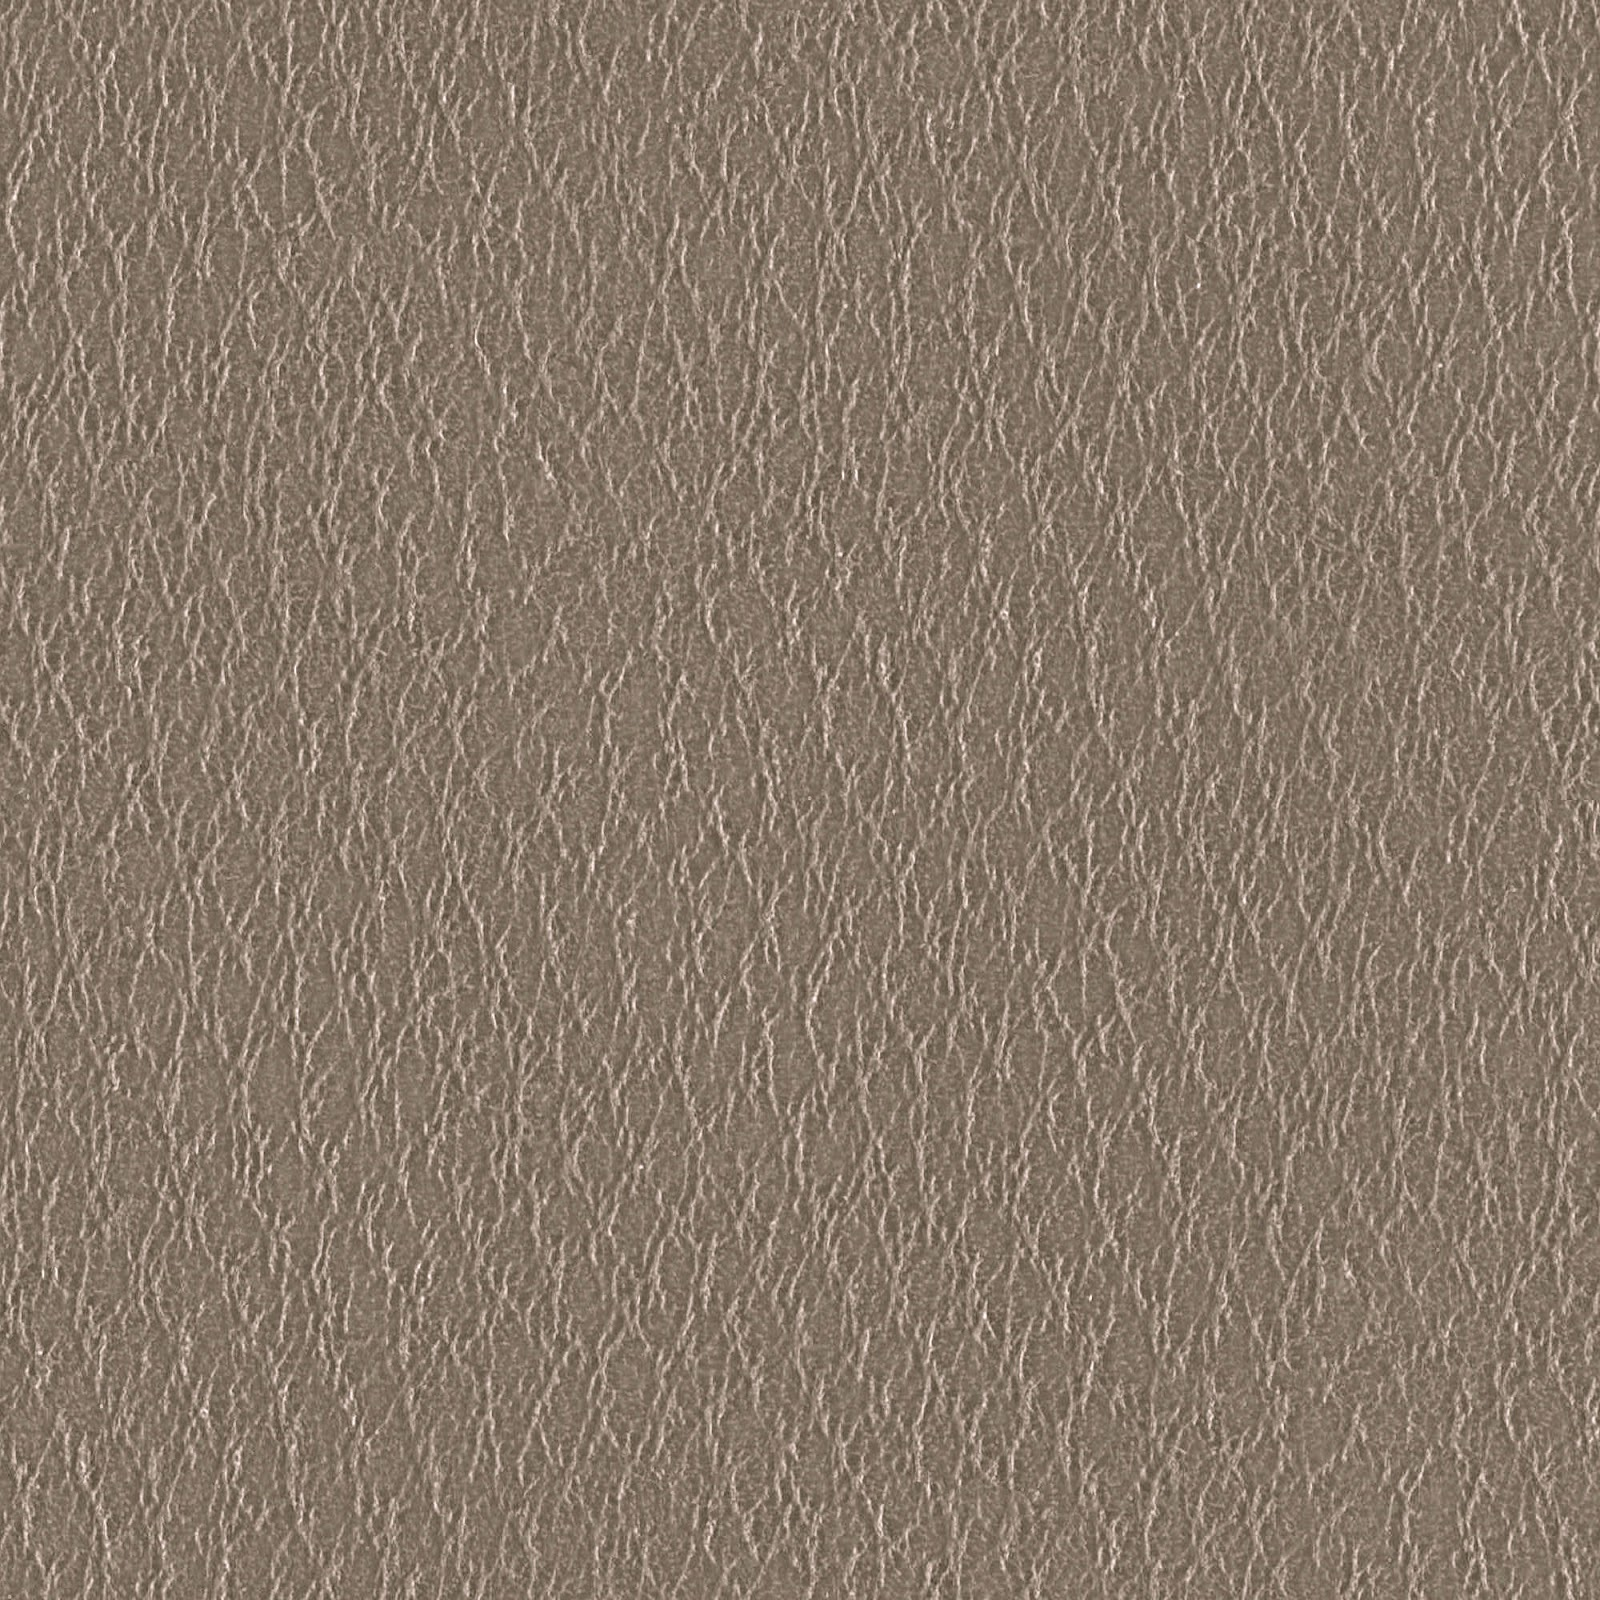 Brown Seamless Fabric Textures High Resolution Seamless Textures Free Seamless Fabric